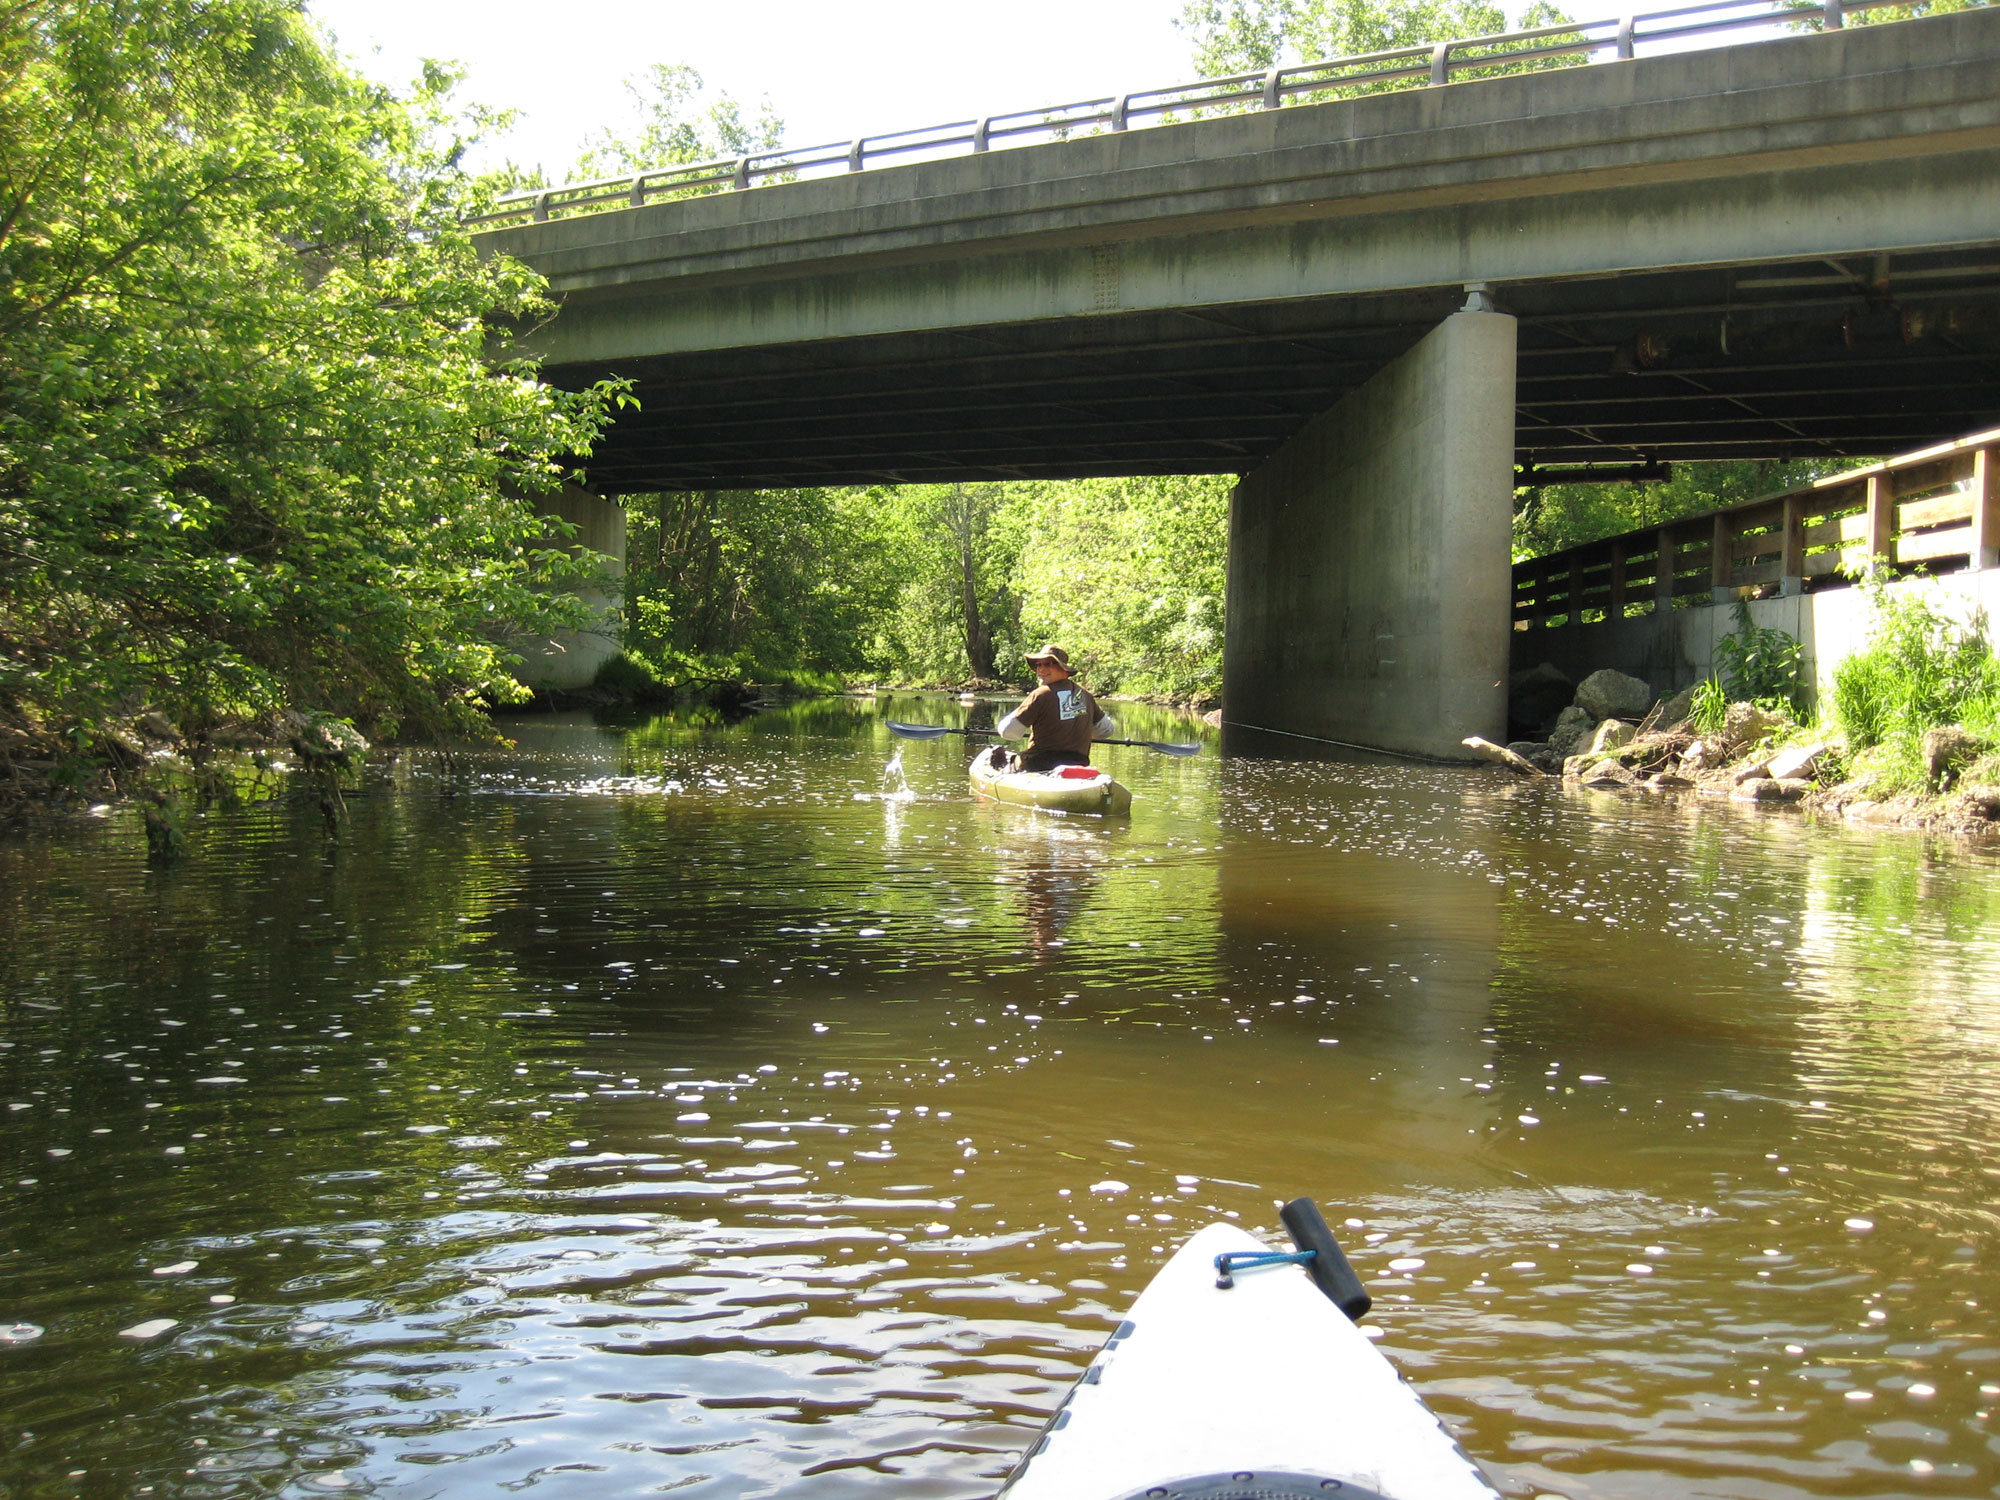 Blacklick creek trip report hikeq for Central ohio fishing report